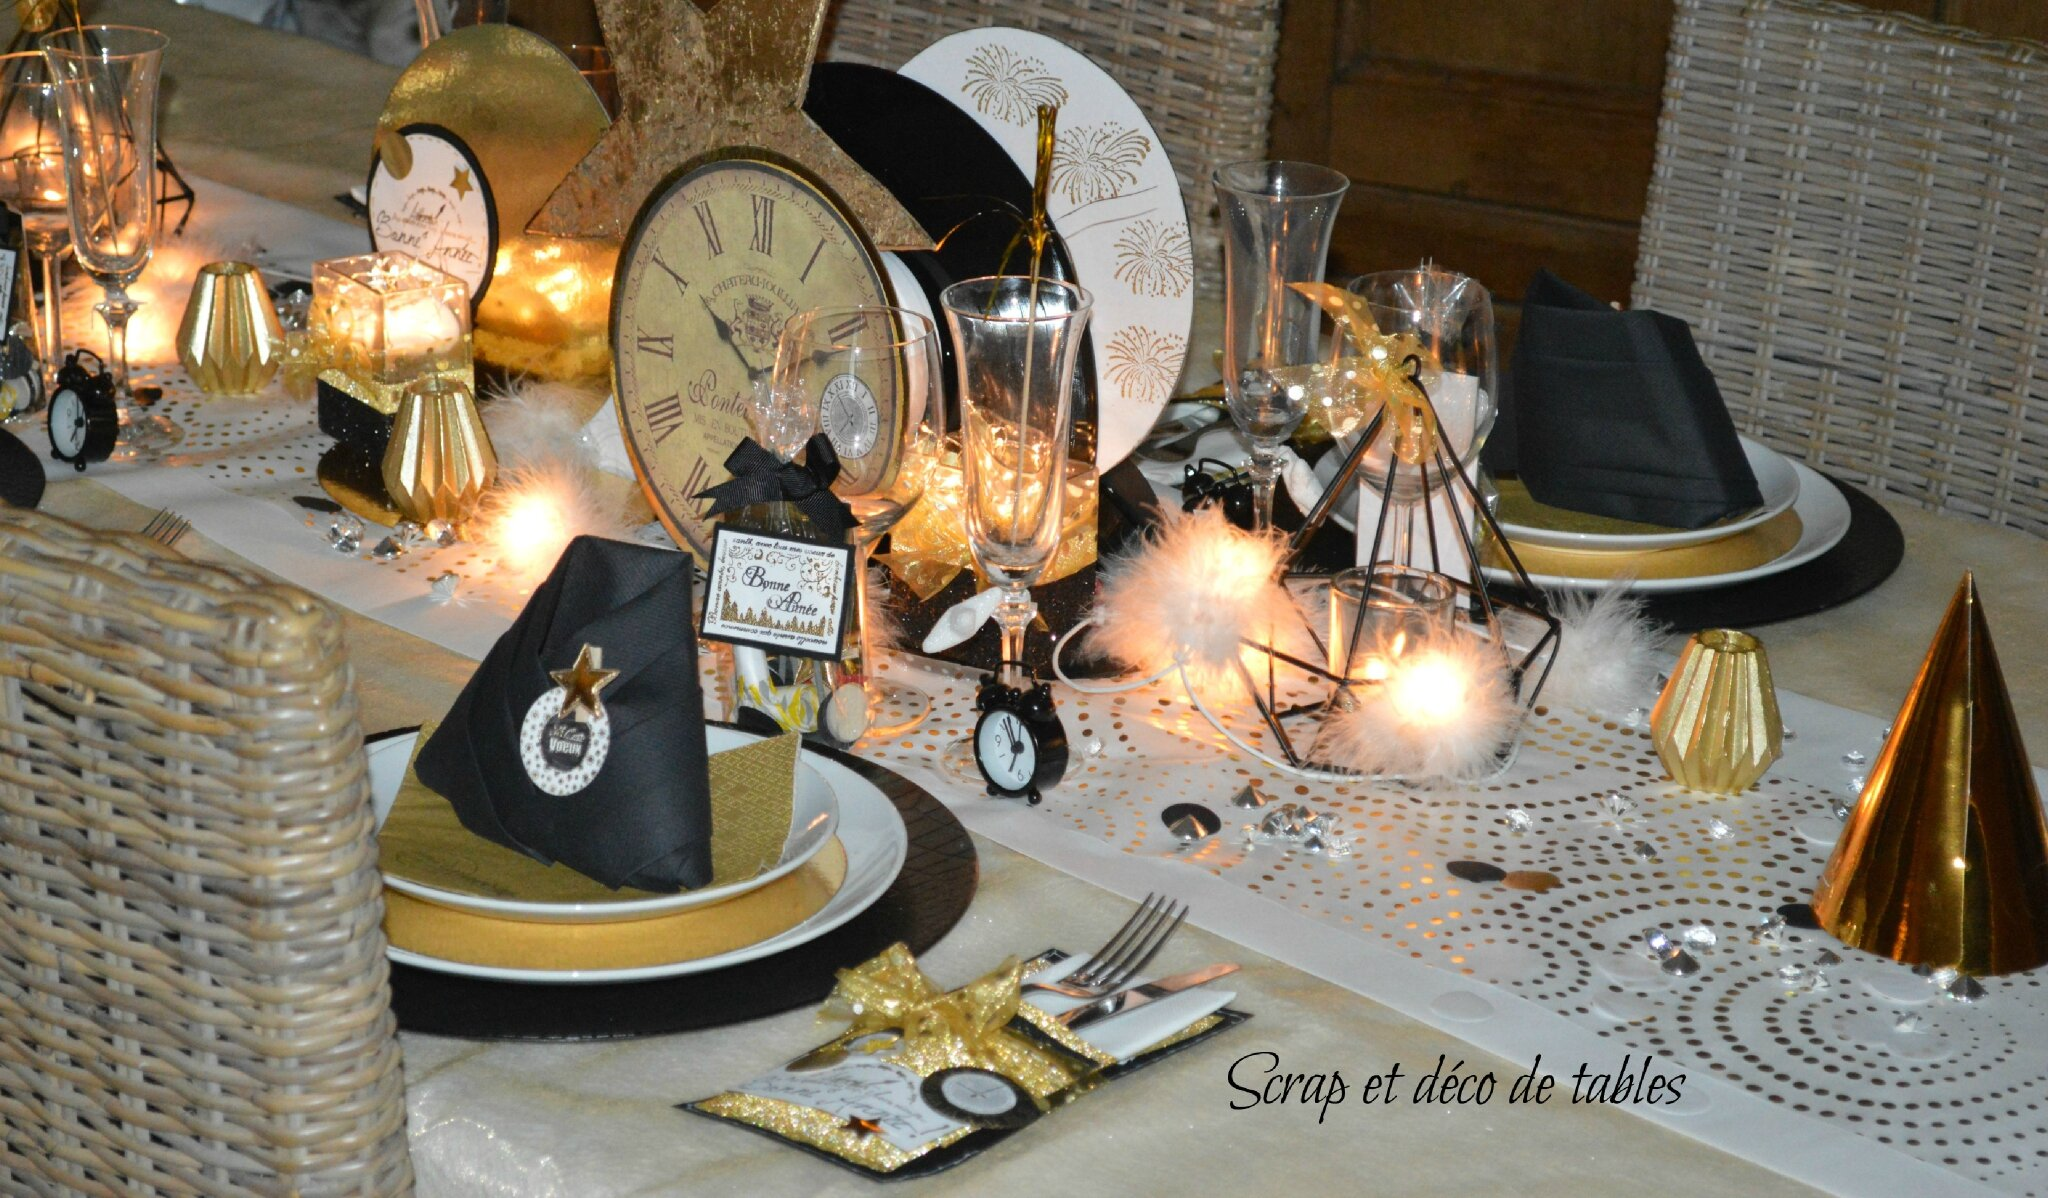 Deco de table nouvel an 2016 scrap et d co de tables - Decoration table reveillon jour de l an ...